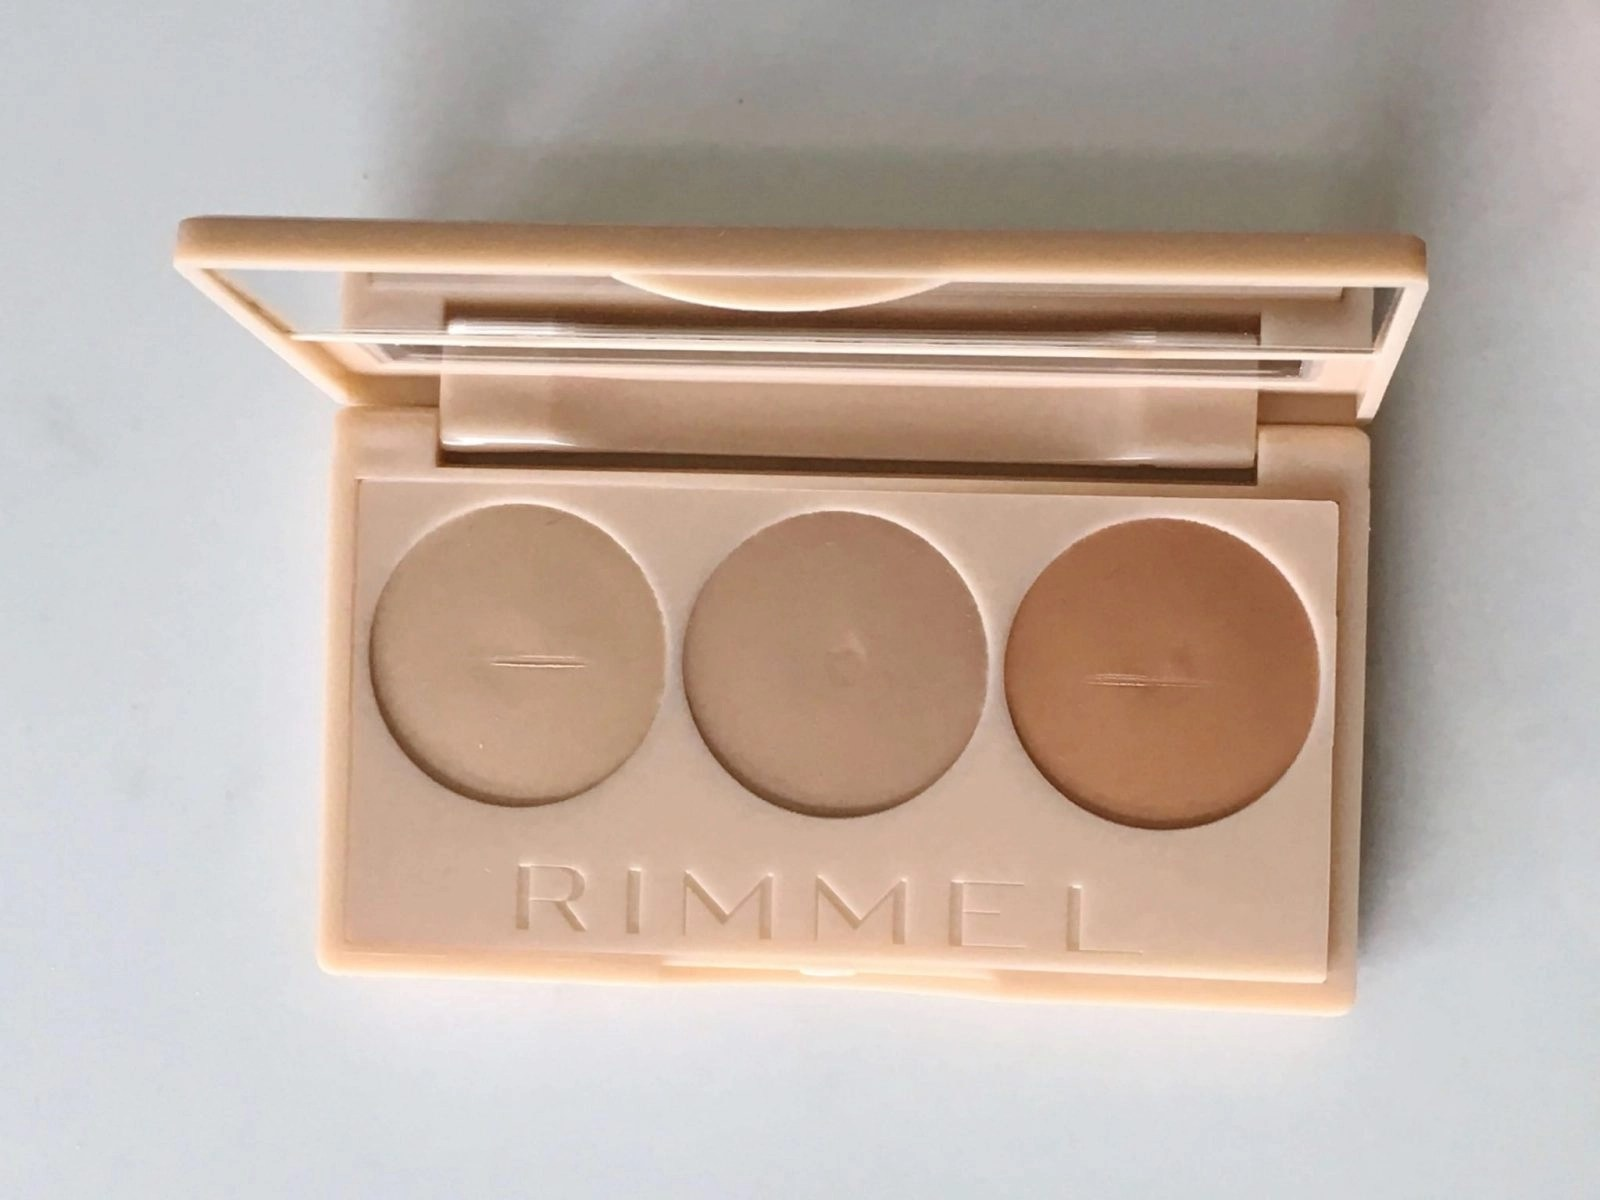 Rimmel Insta Conceal and Contour Palette Opened